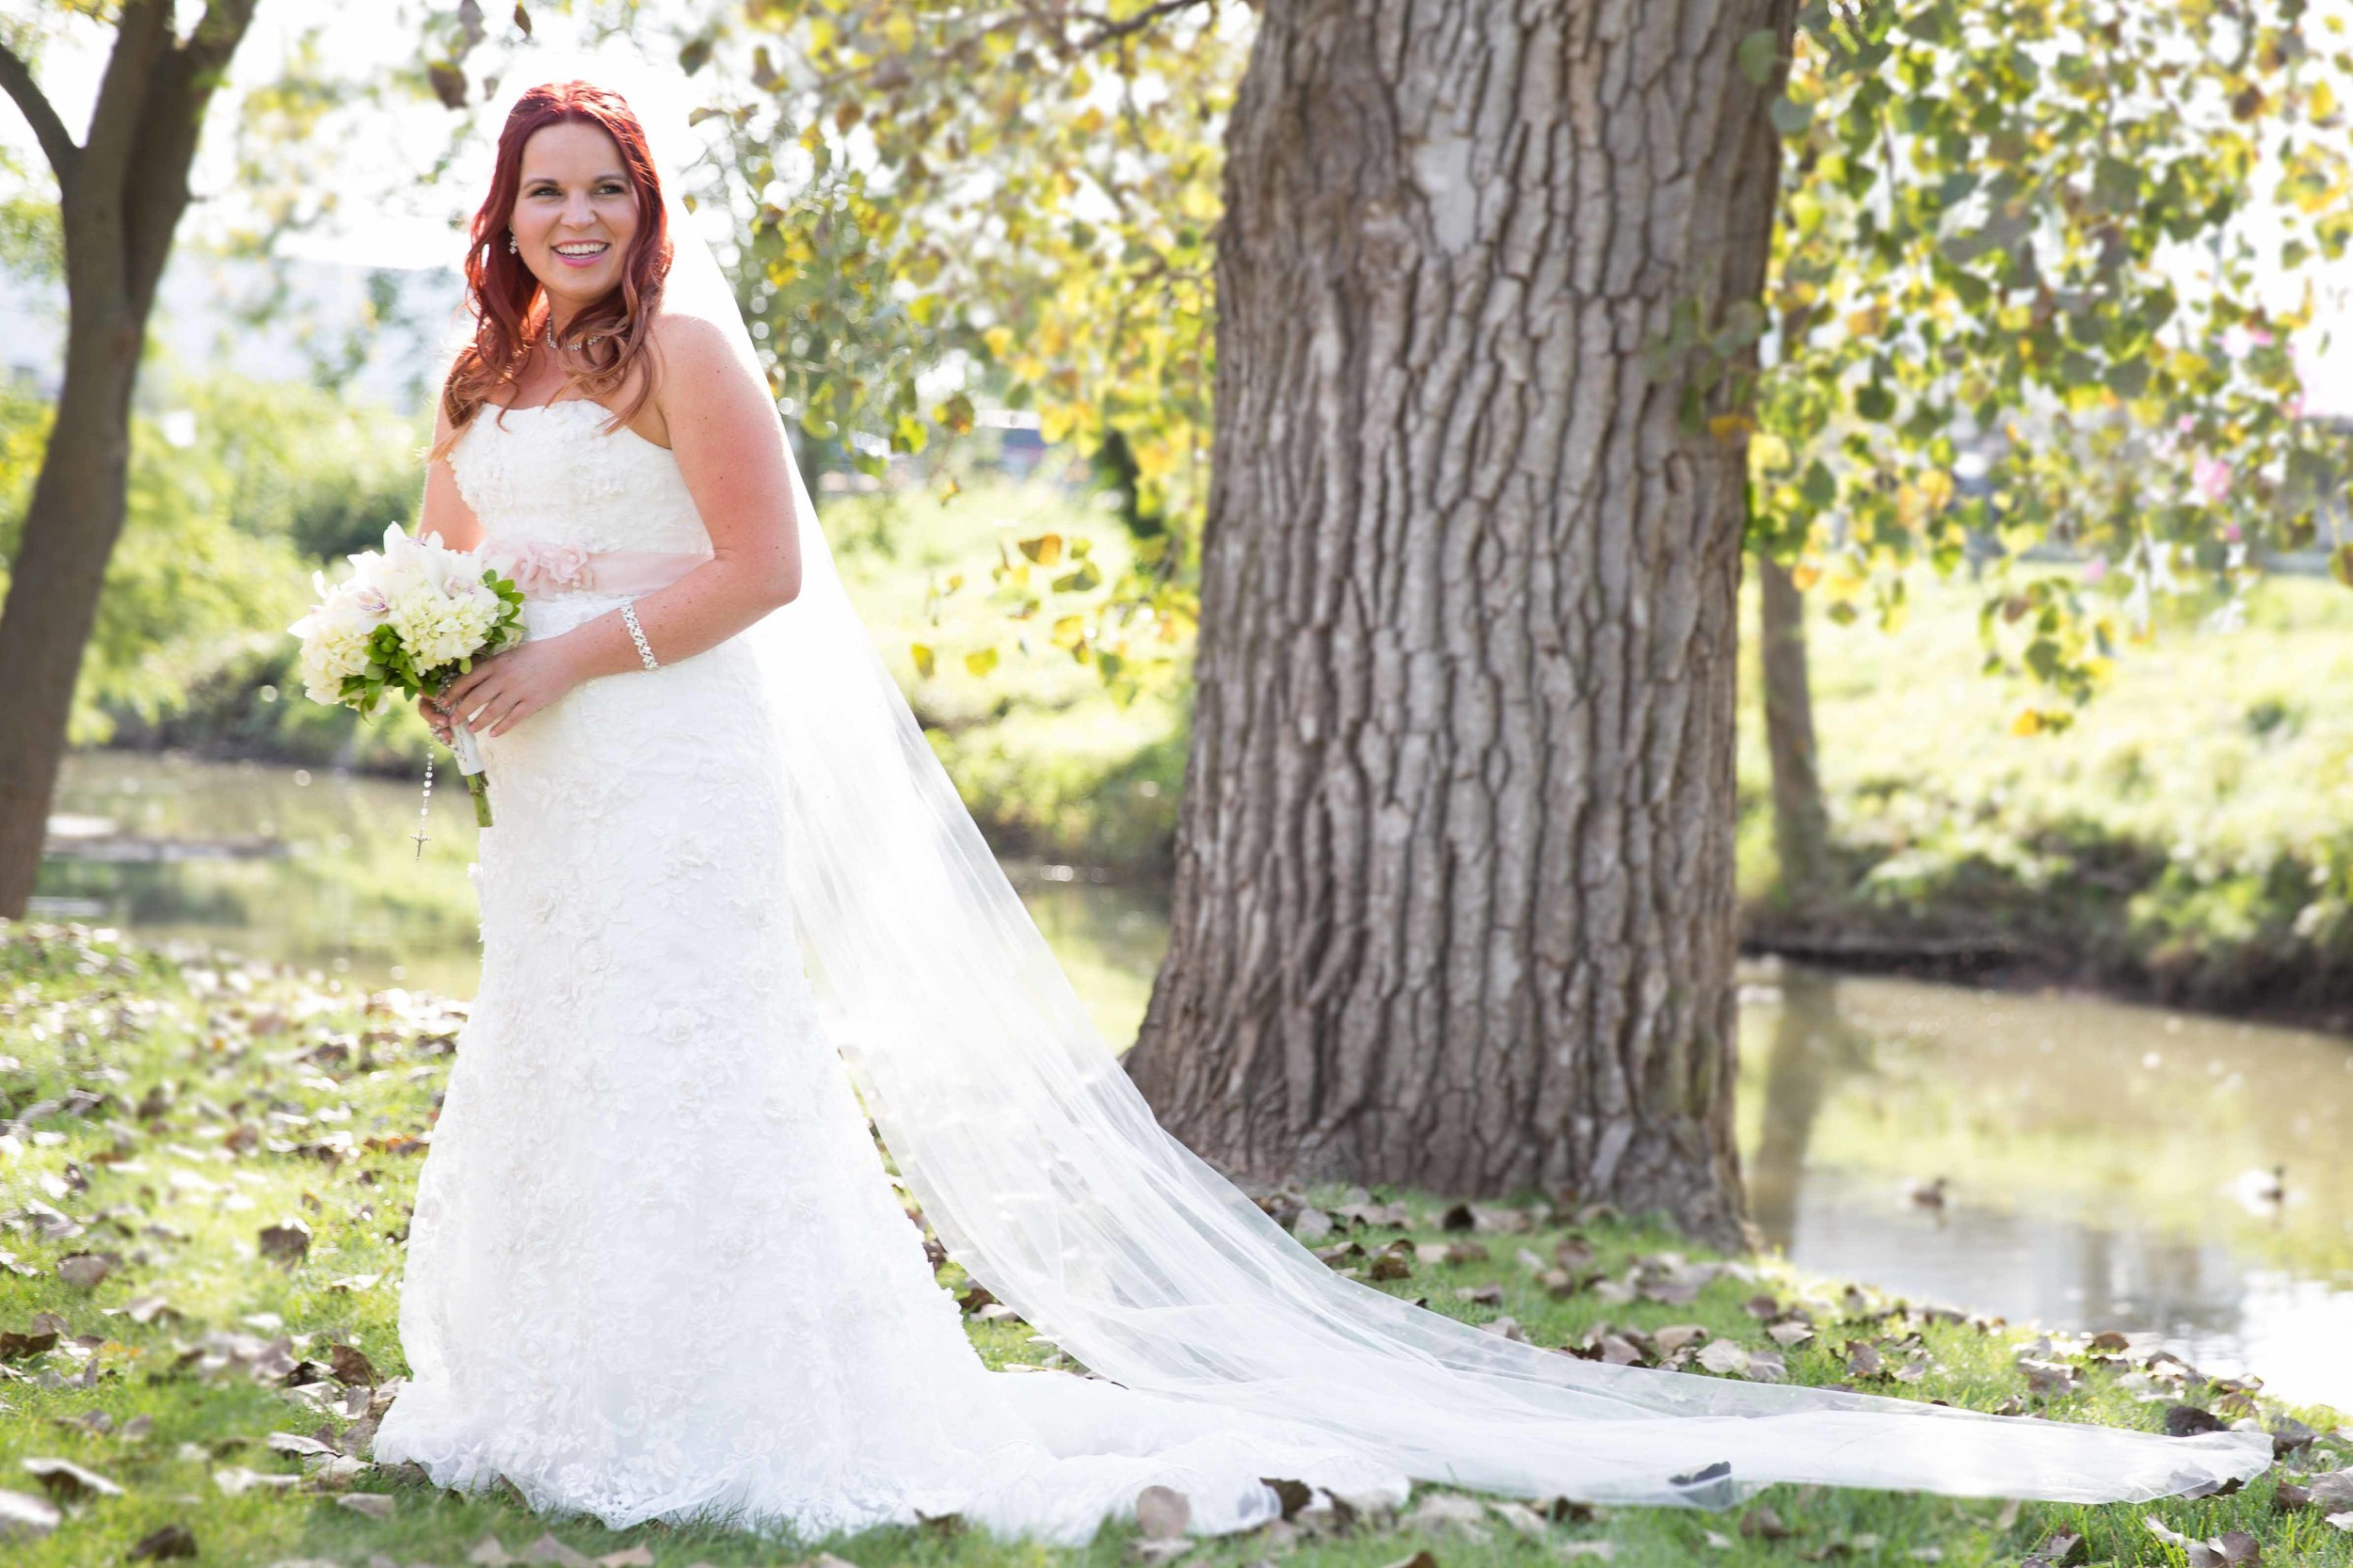 murczek-weddings-002.jpg